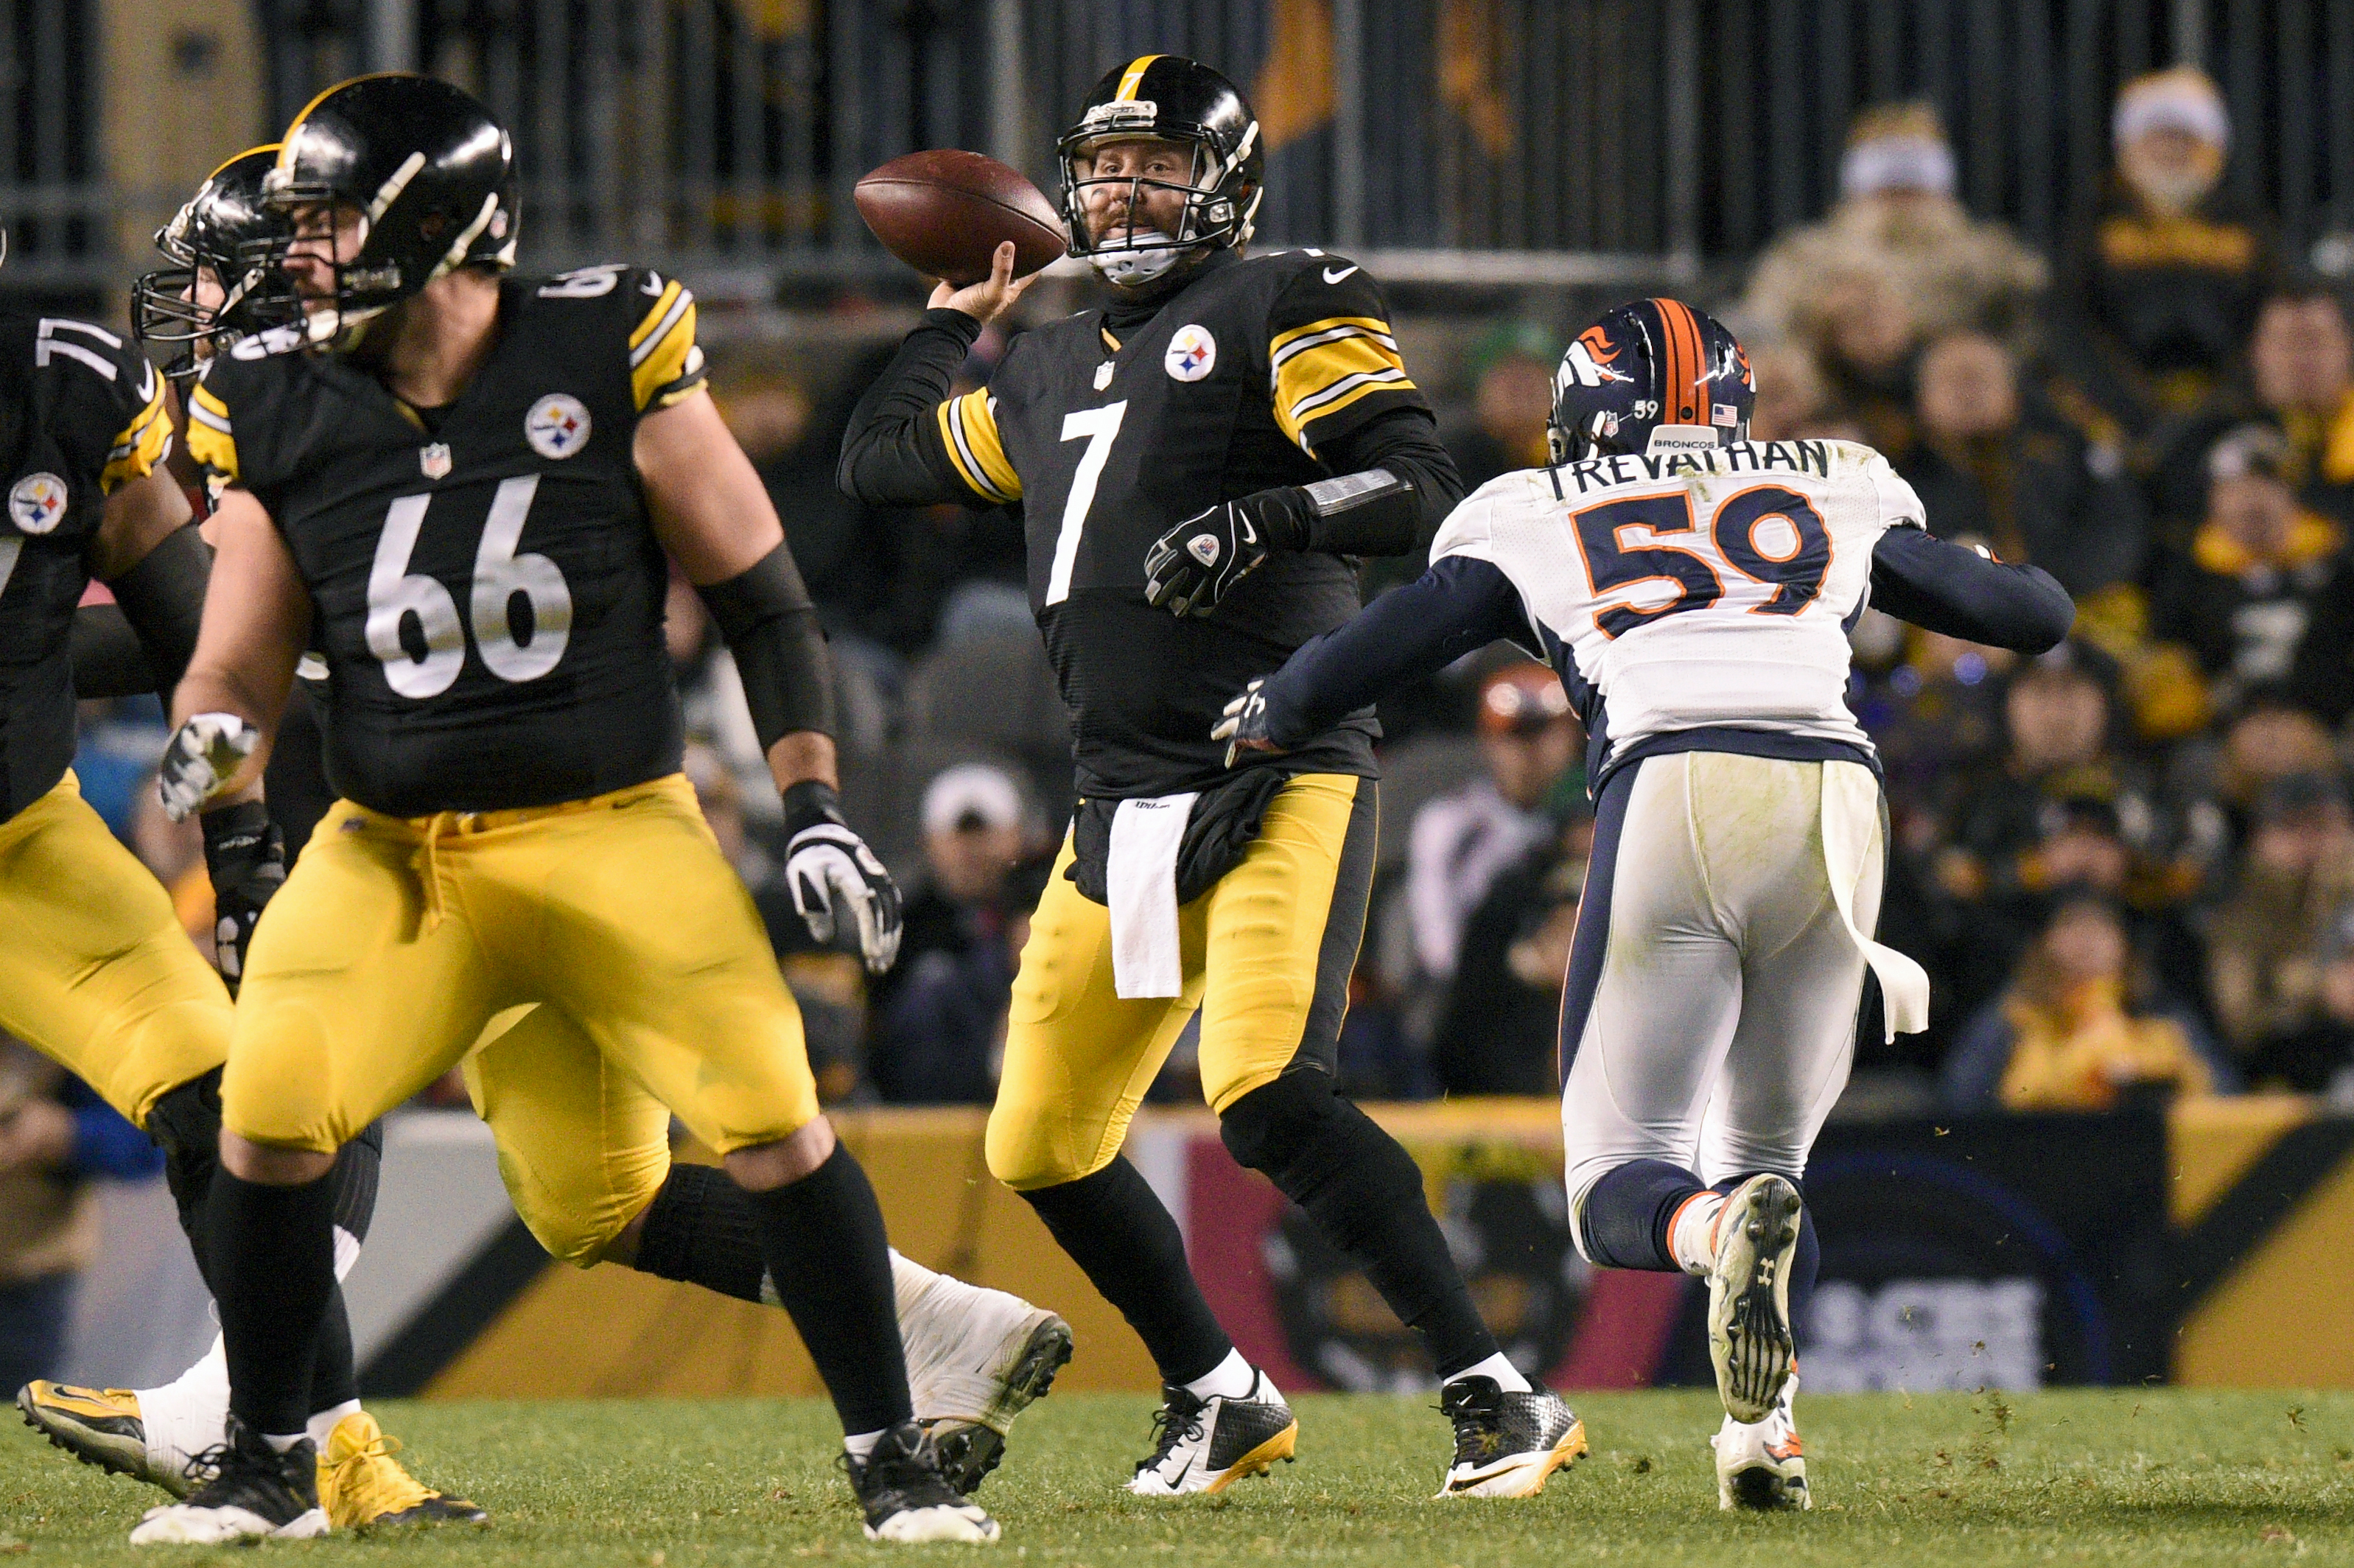 Pittsburgh Steelers quarterback Ben Roethlisberger (7) passes during the second half of an NFL football game under pressure by Denver Broncos inside linebacker Danny Trevathan (59) in Pittsburgh, Sunday, Dec. 20, 2015. (AP Photo/Don Wright)